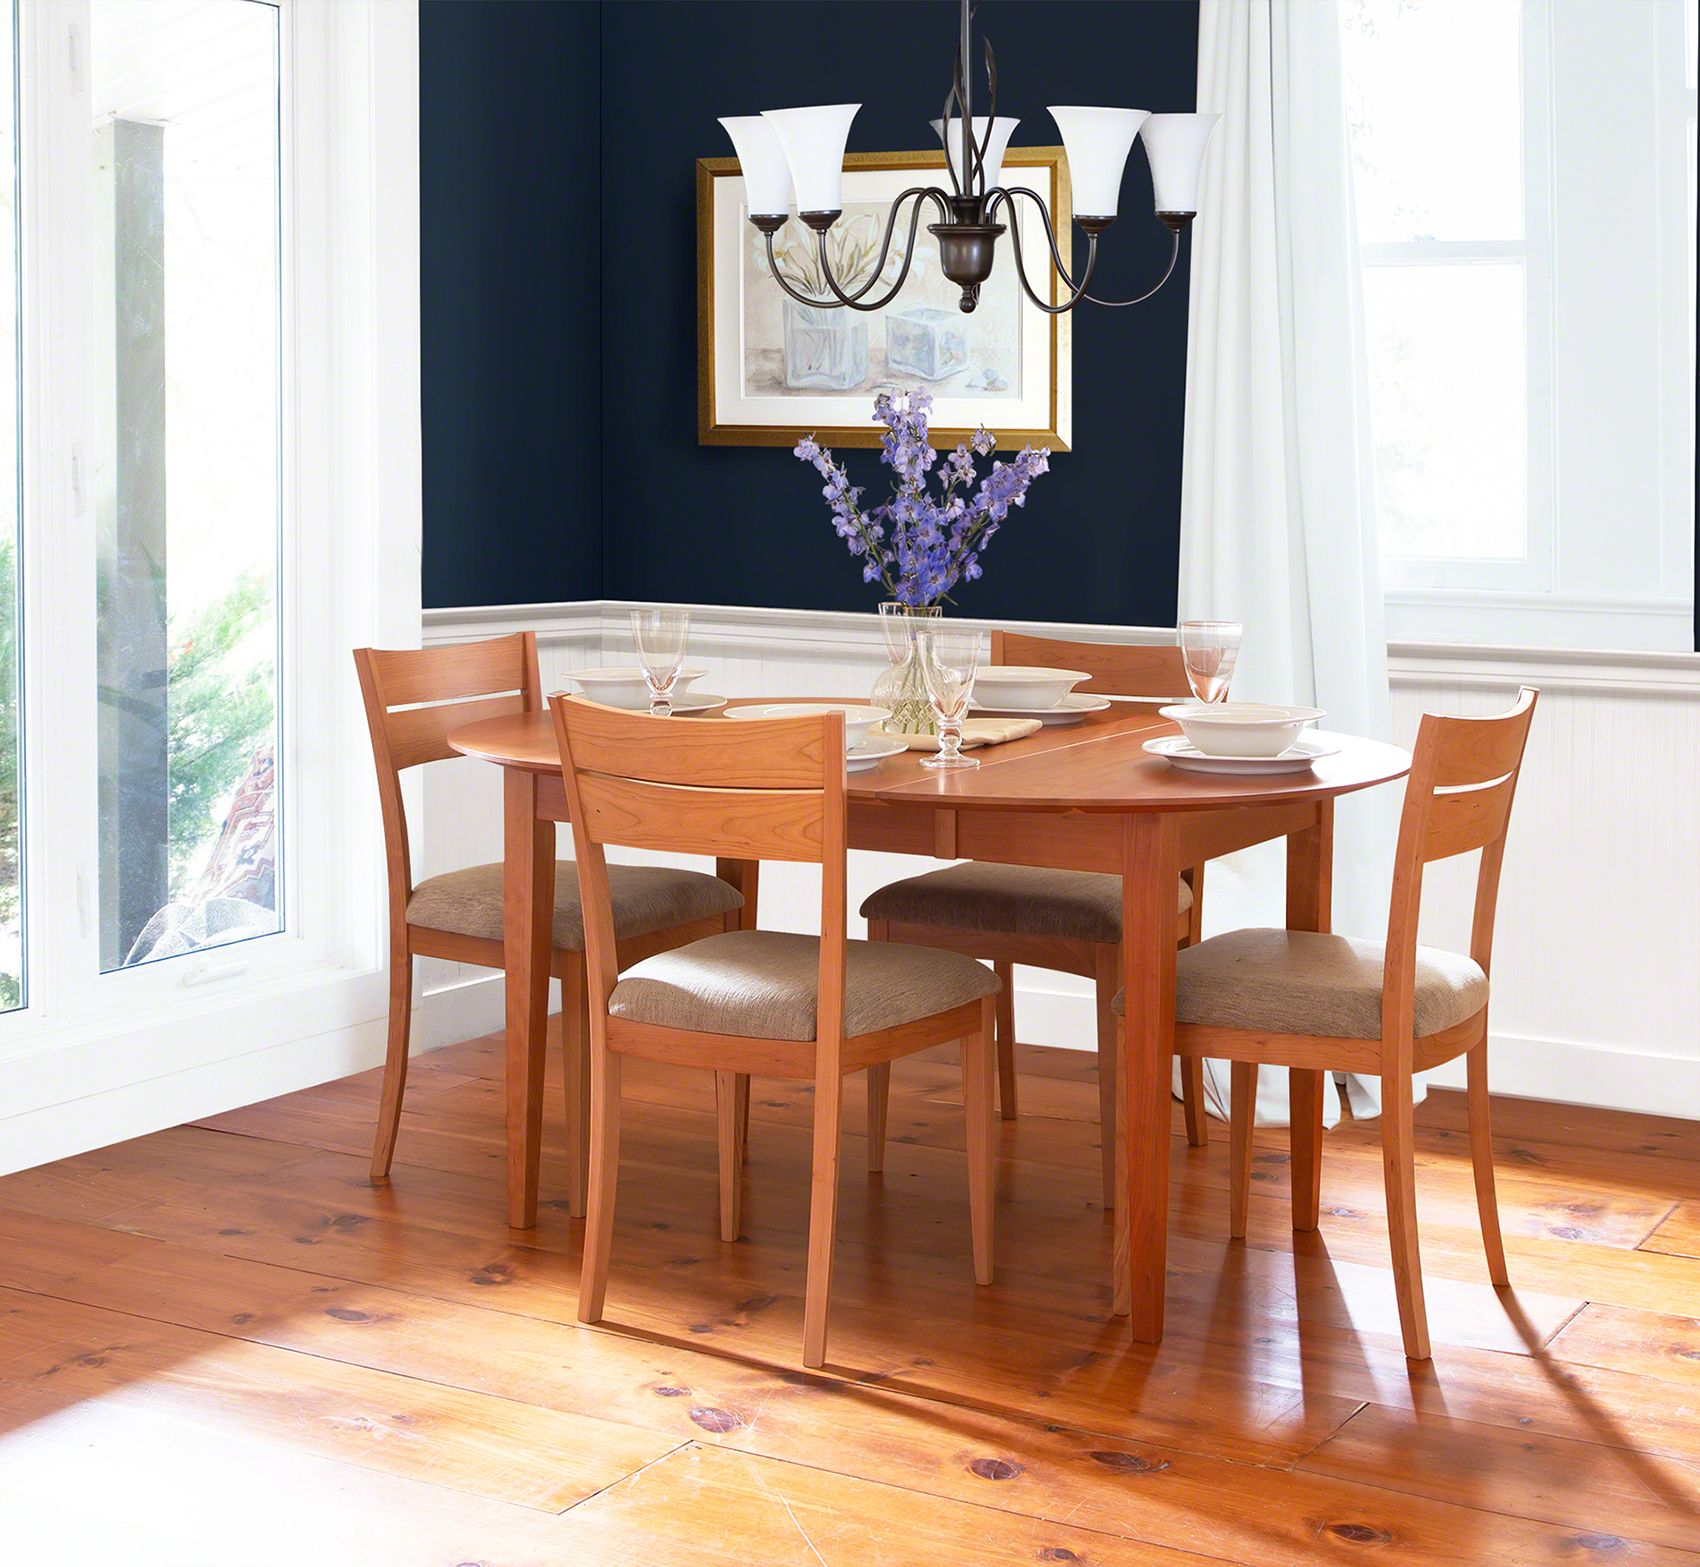 Classic Shaker Round Dining Table In 2020 Round Dining Dining Room Furniture Dining